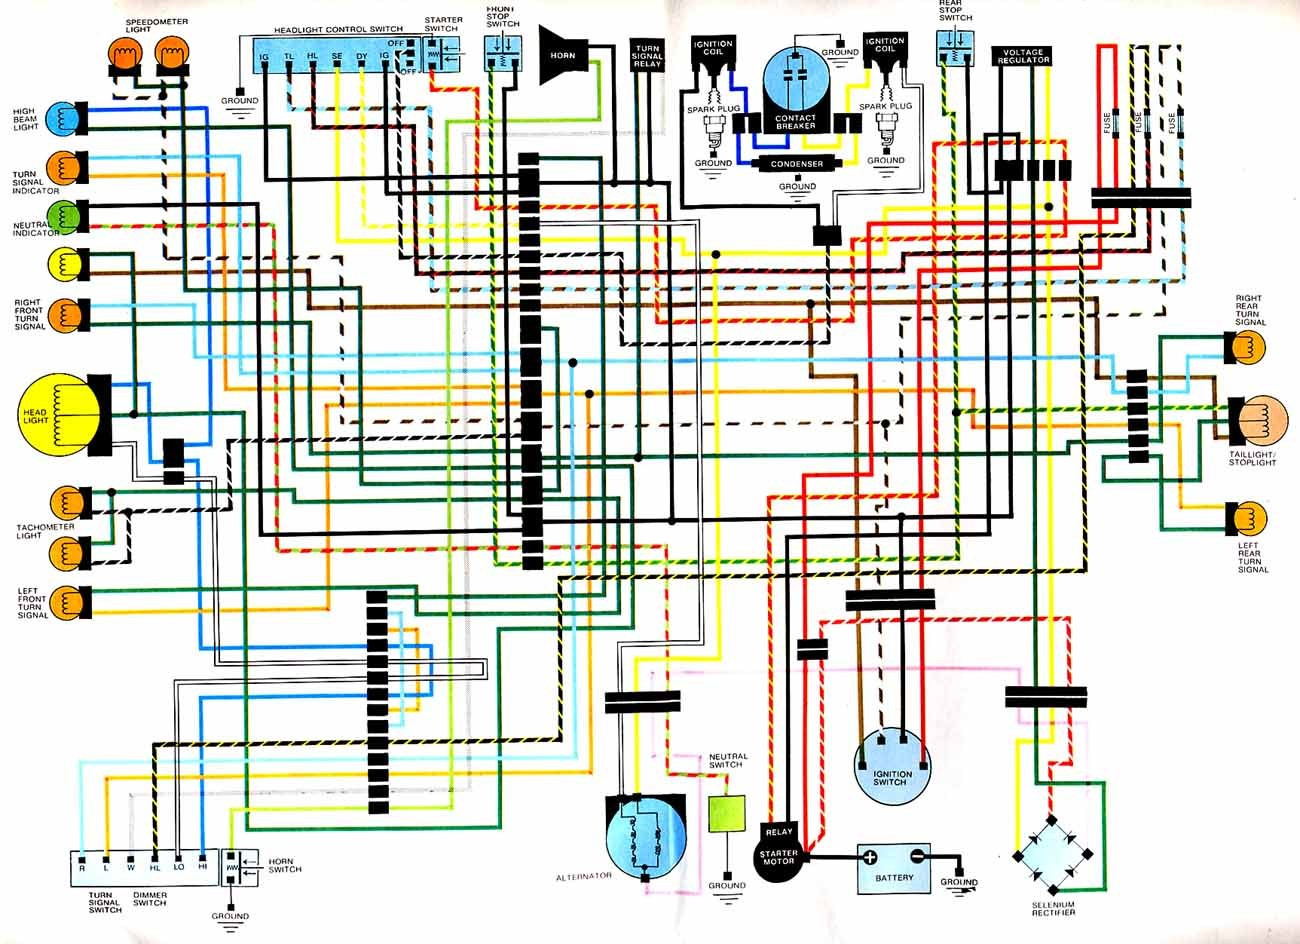 Honda Cm 400t Wiring Diagram - Wiring Diagrams Name bare-academy -  bare-academy.illabirintodellacreativita.it | Cm400 Wiring Harness |  | bare-academy.illabirintodellacreativita.it